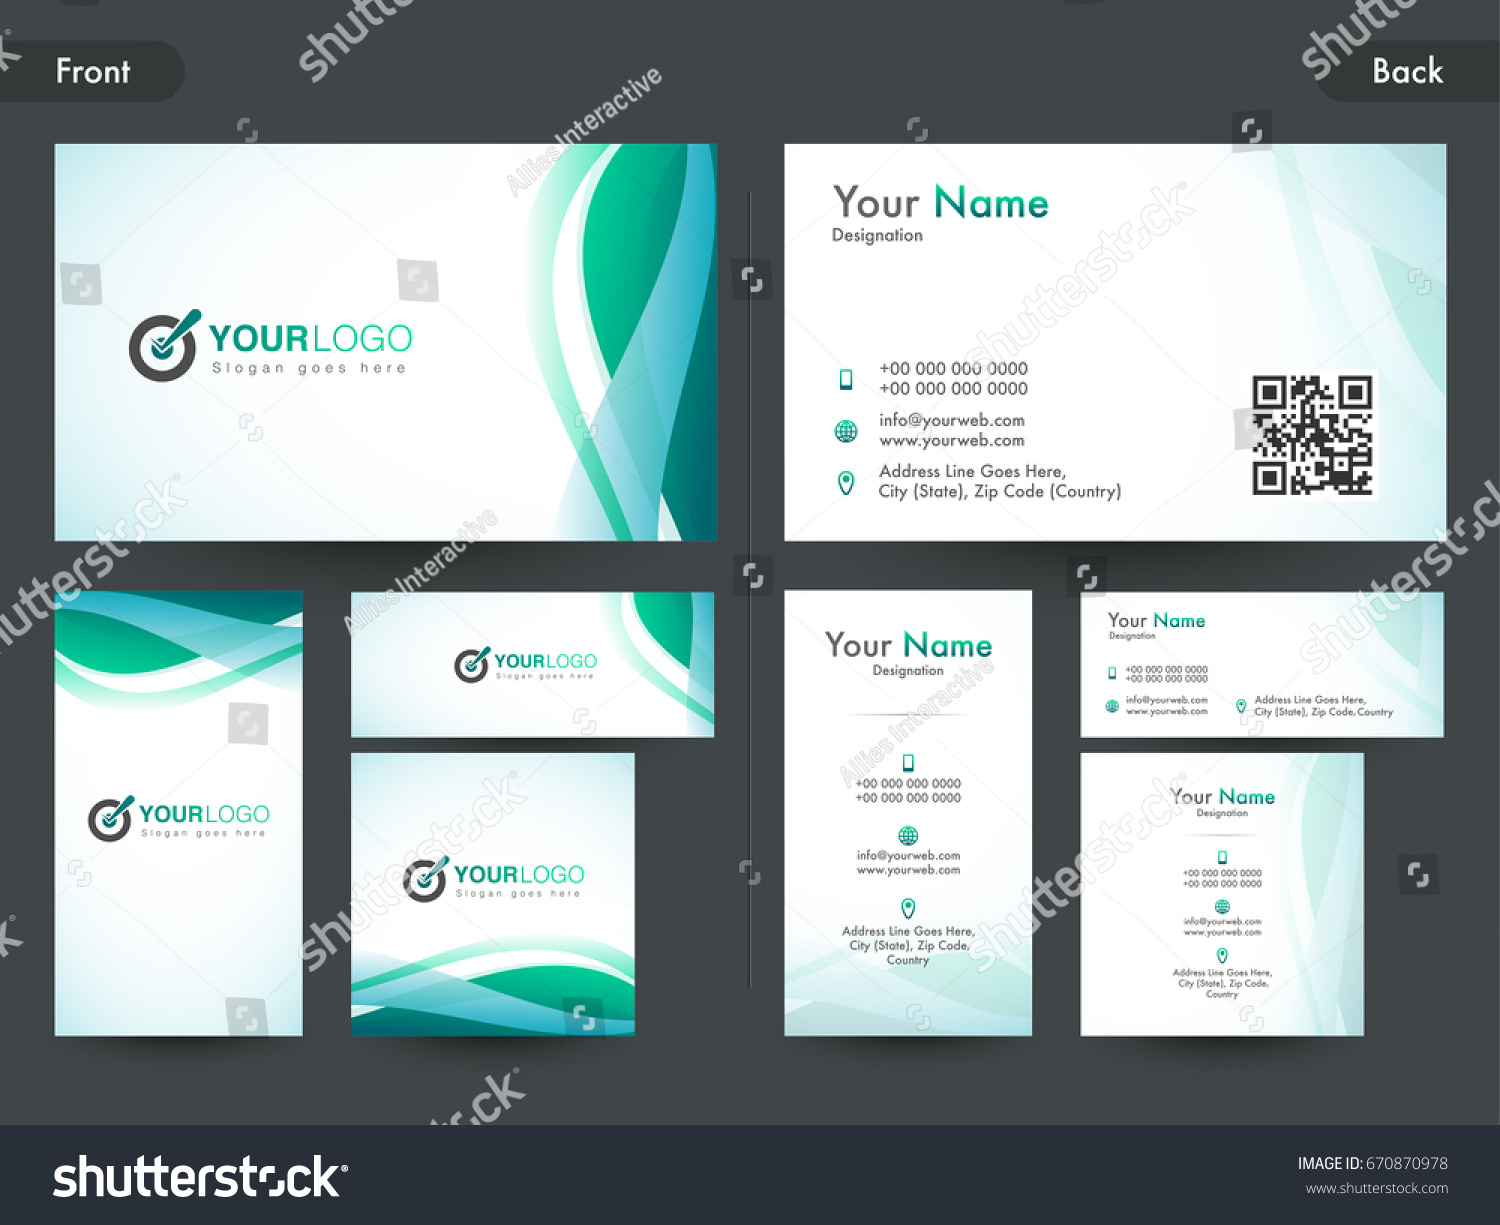 Creative business card name card visiting stock vector 670870978 creative business card name card visiting stock vector 670870978 shutterstock reheart Images